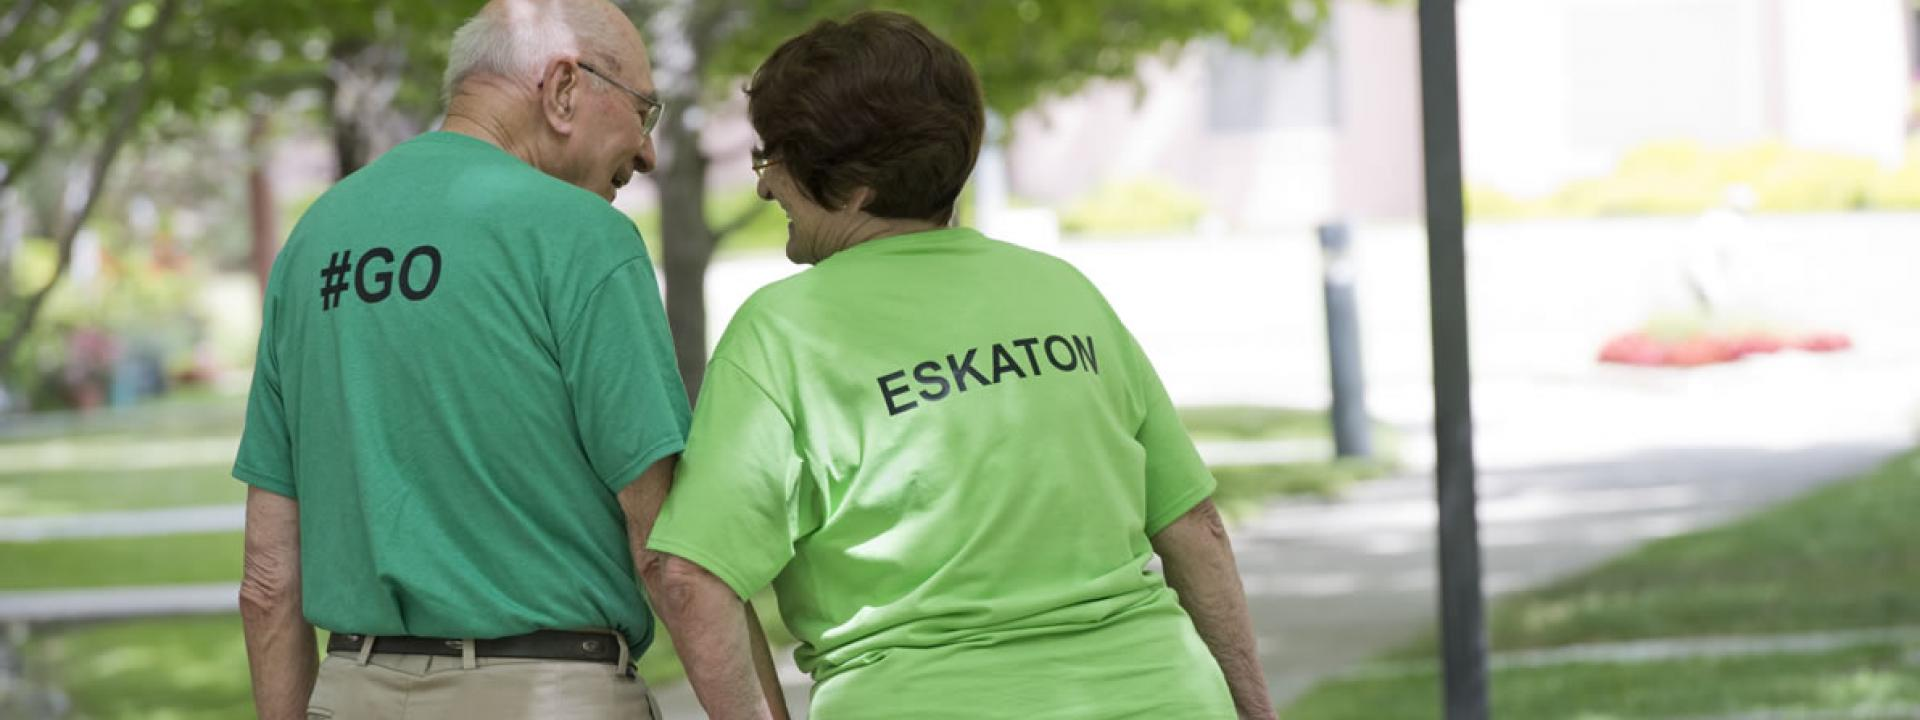 Residents taking a walk, holding hands and wearing Go Eskaton t-shirts